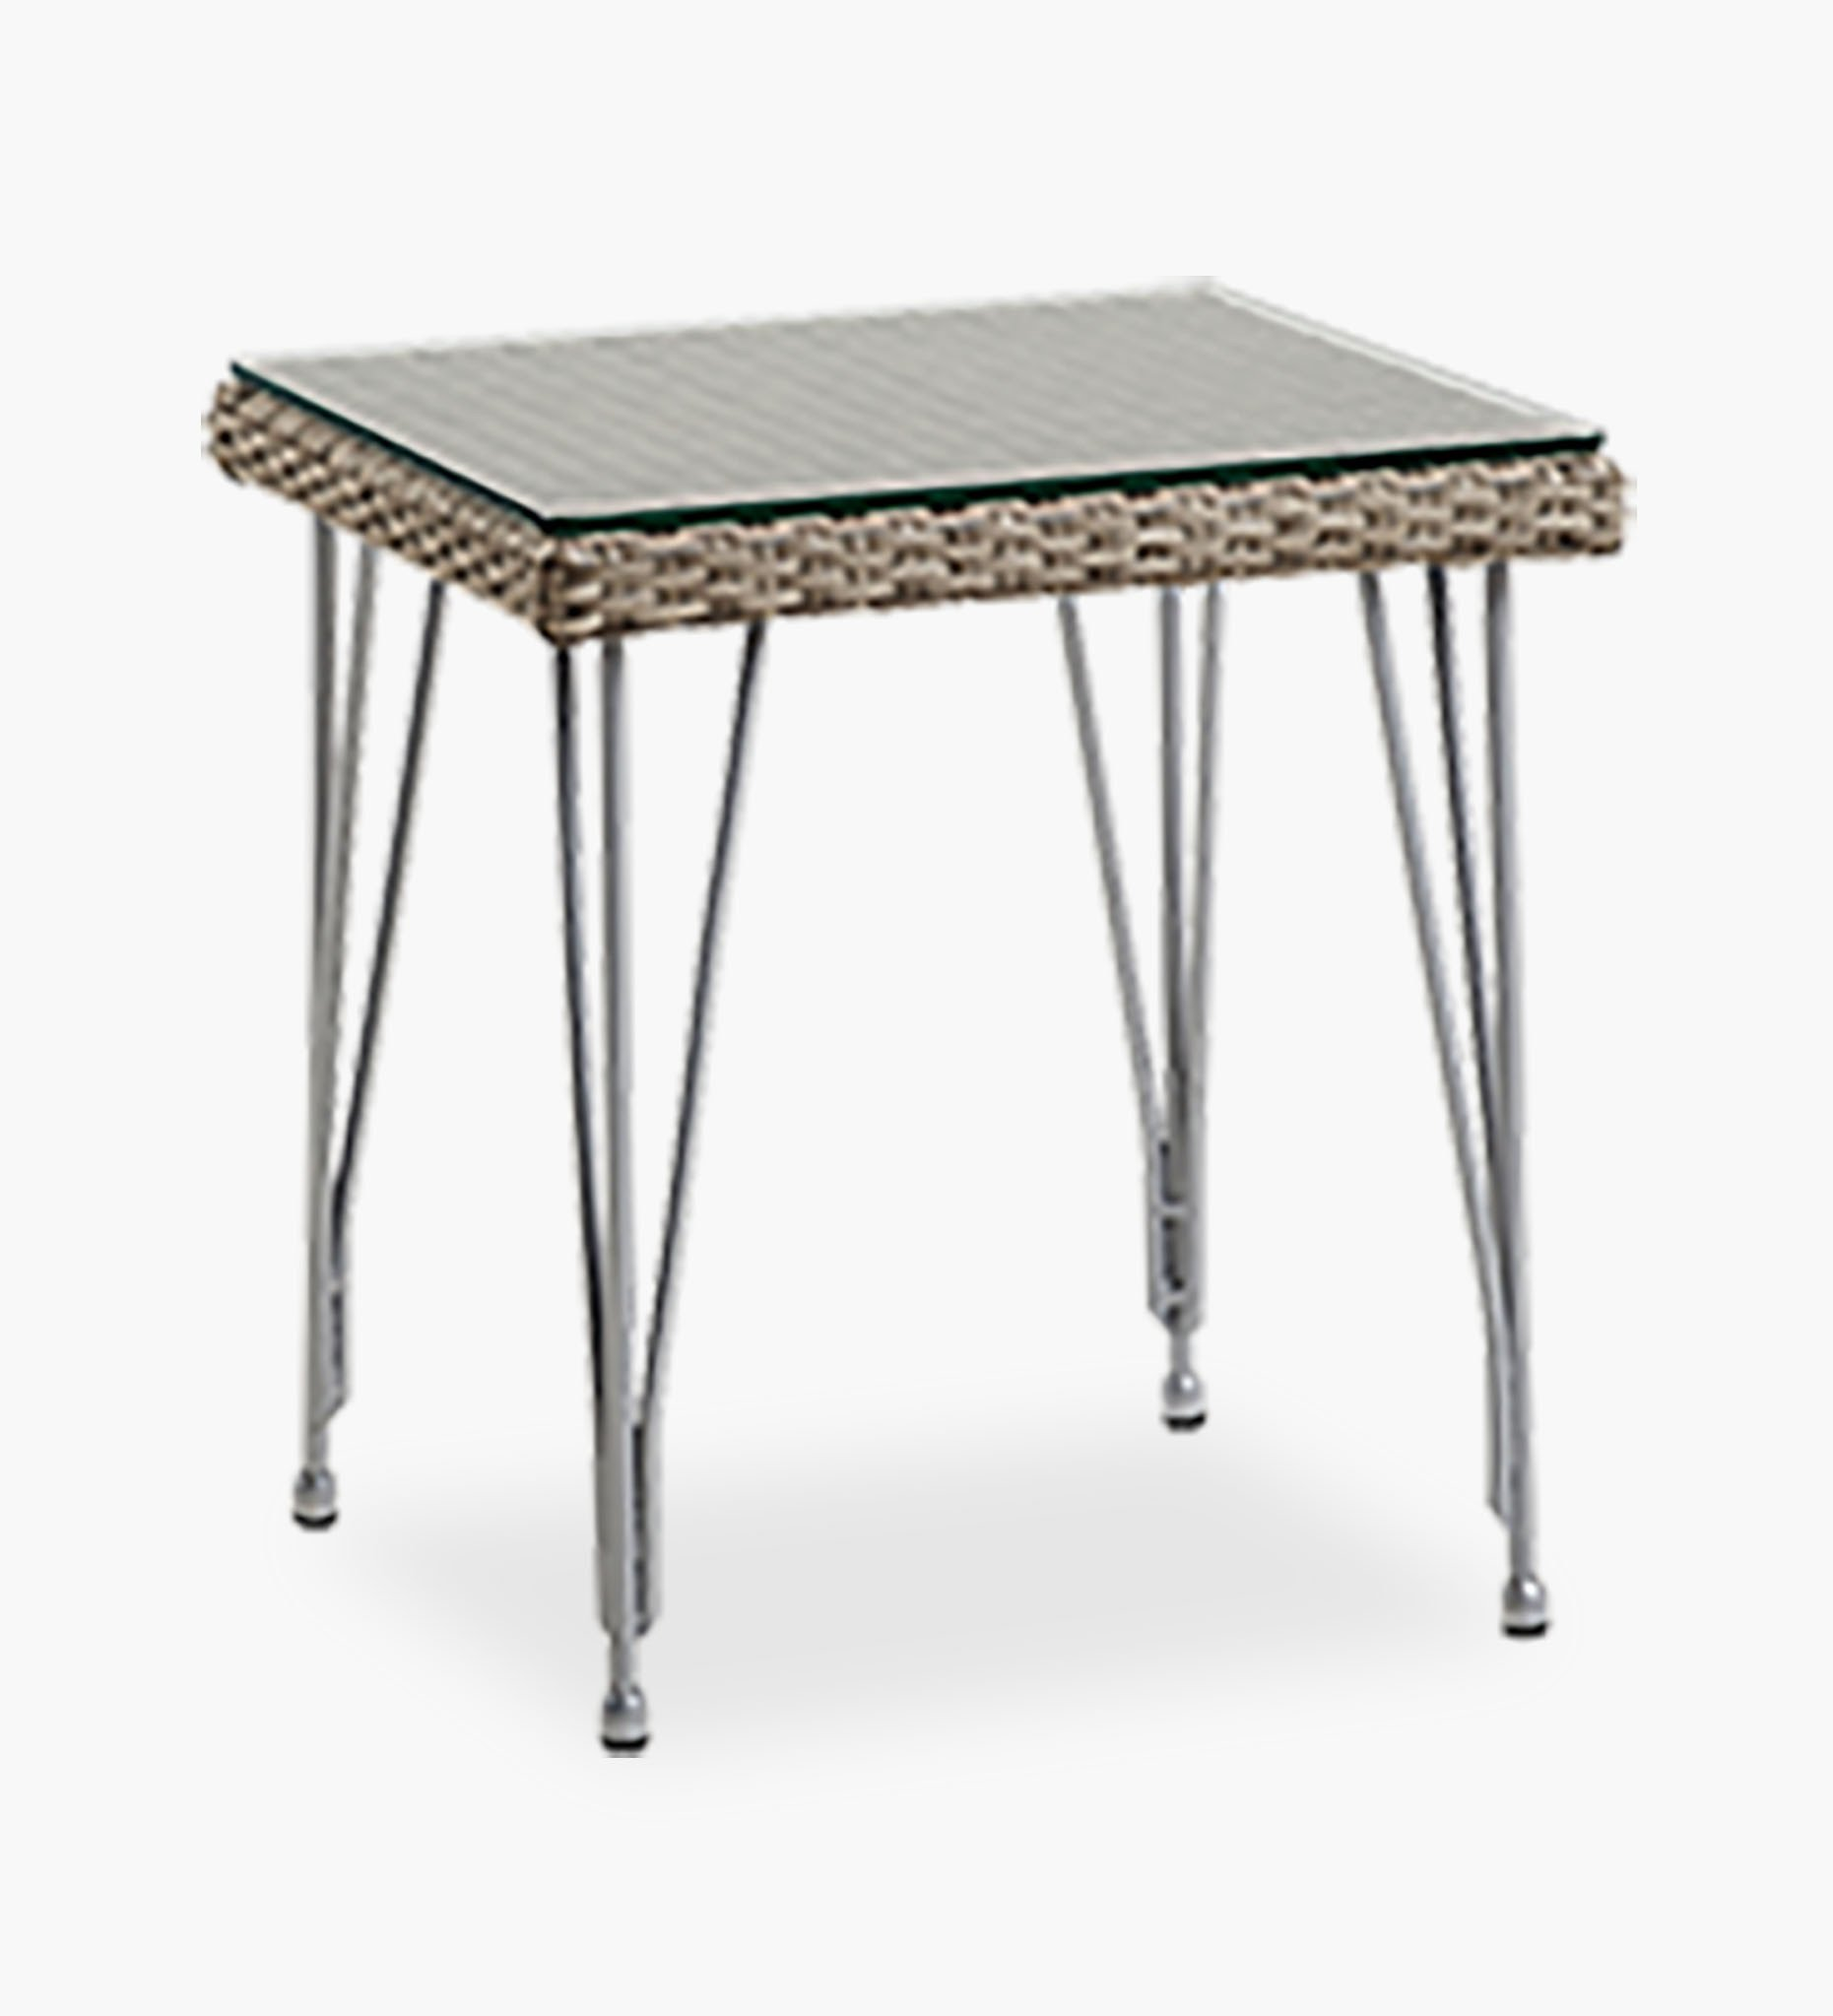 sika design mercur outdoor side table all weather rattan teak grey circular patio furniture covers colorful lamps small cabinet legs nightstand under drop down kitchen art deco